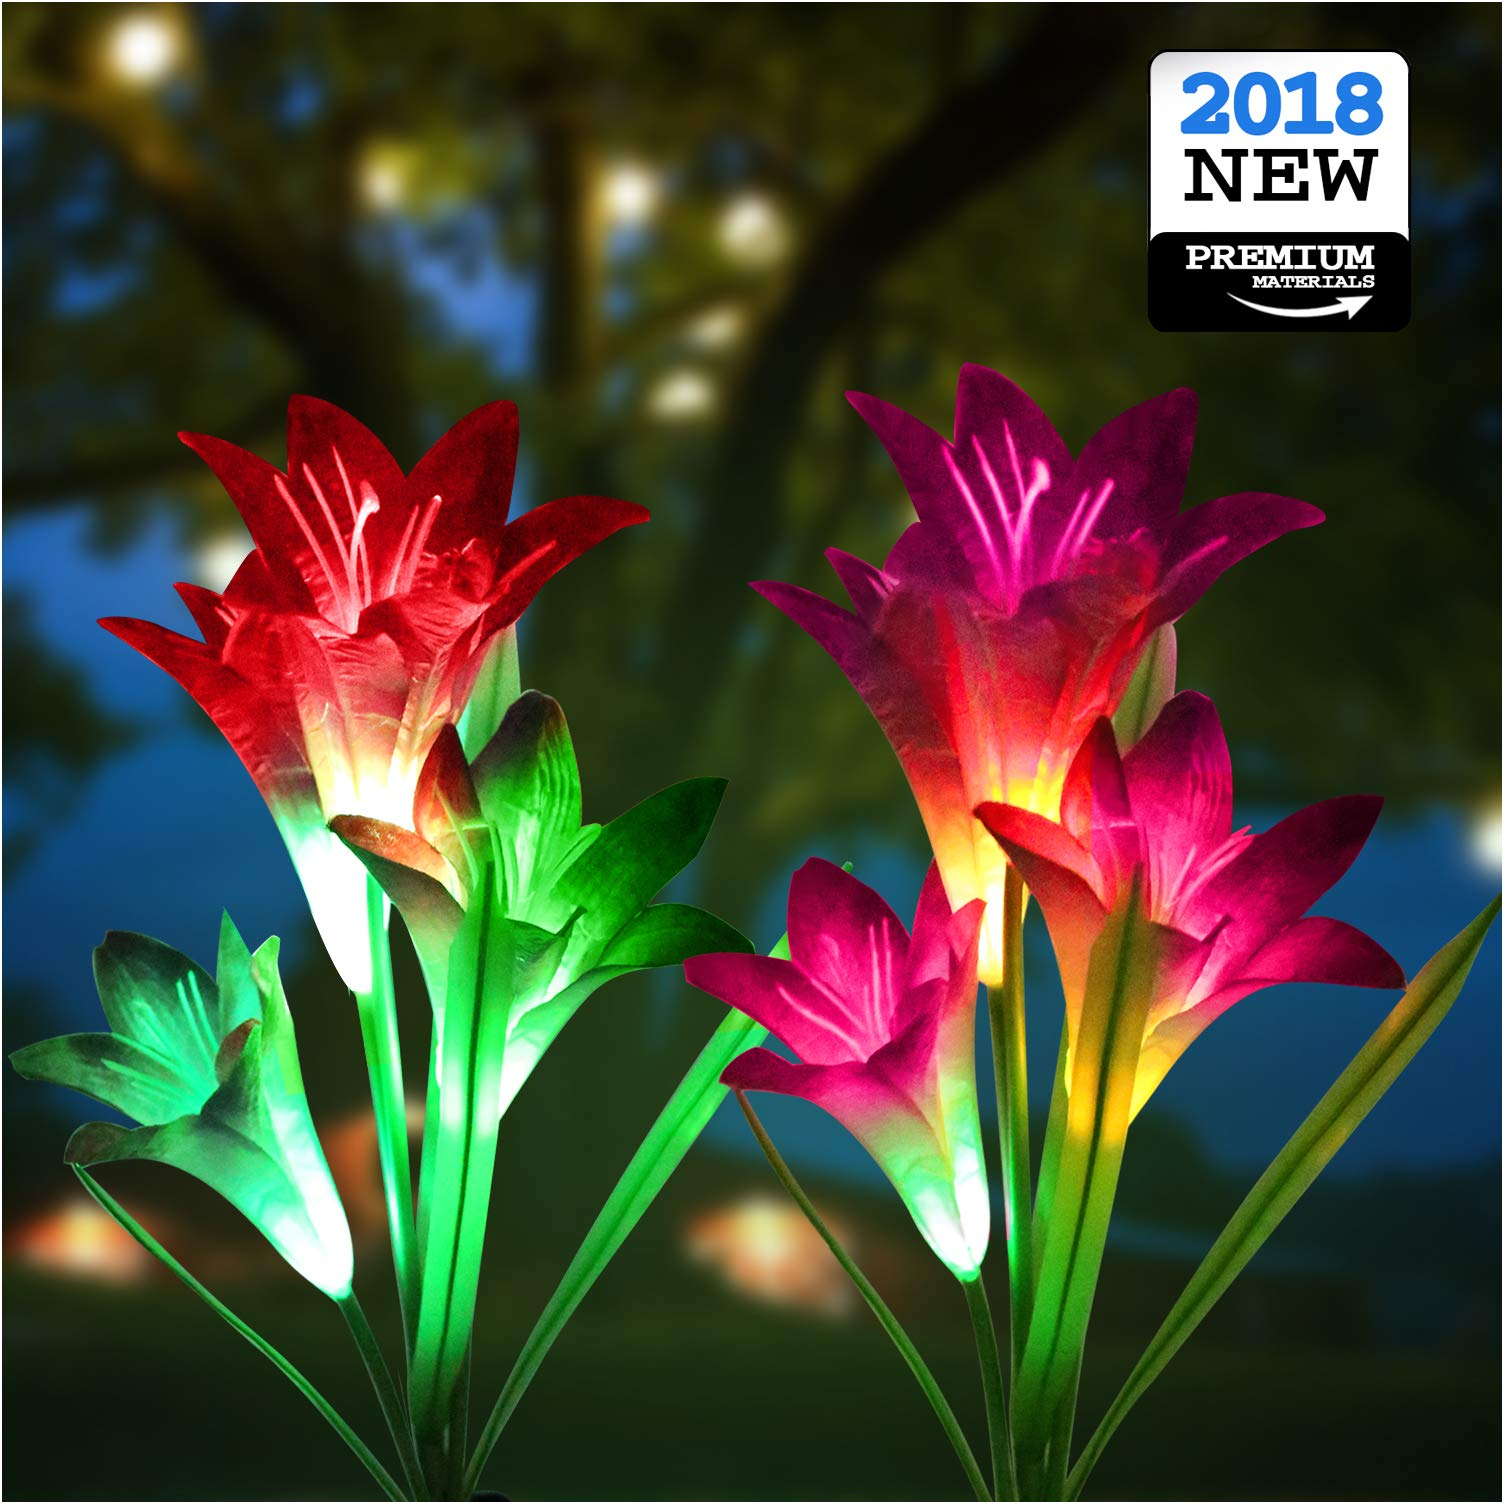 Solar Lights Outdoor - New Upgraded Solar Garden Lights, Multi-Color Changing Lily Solar Flower Lights for Patio,Yard Decoration, Bigger Flower and Wider Solar Panel(2 Pack, Purple and Red)